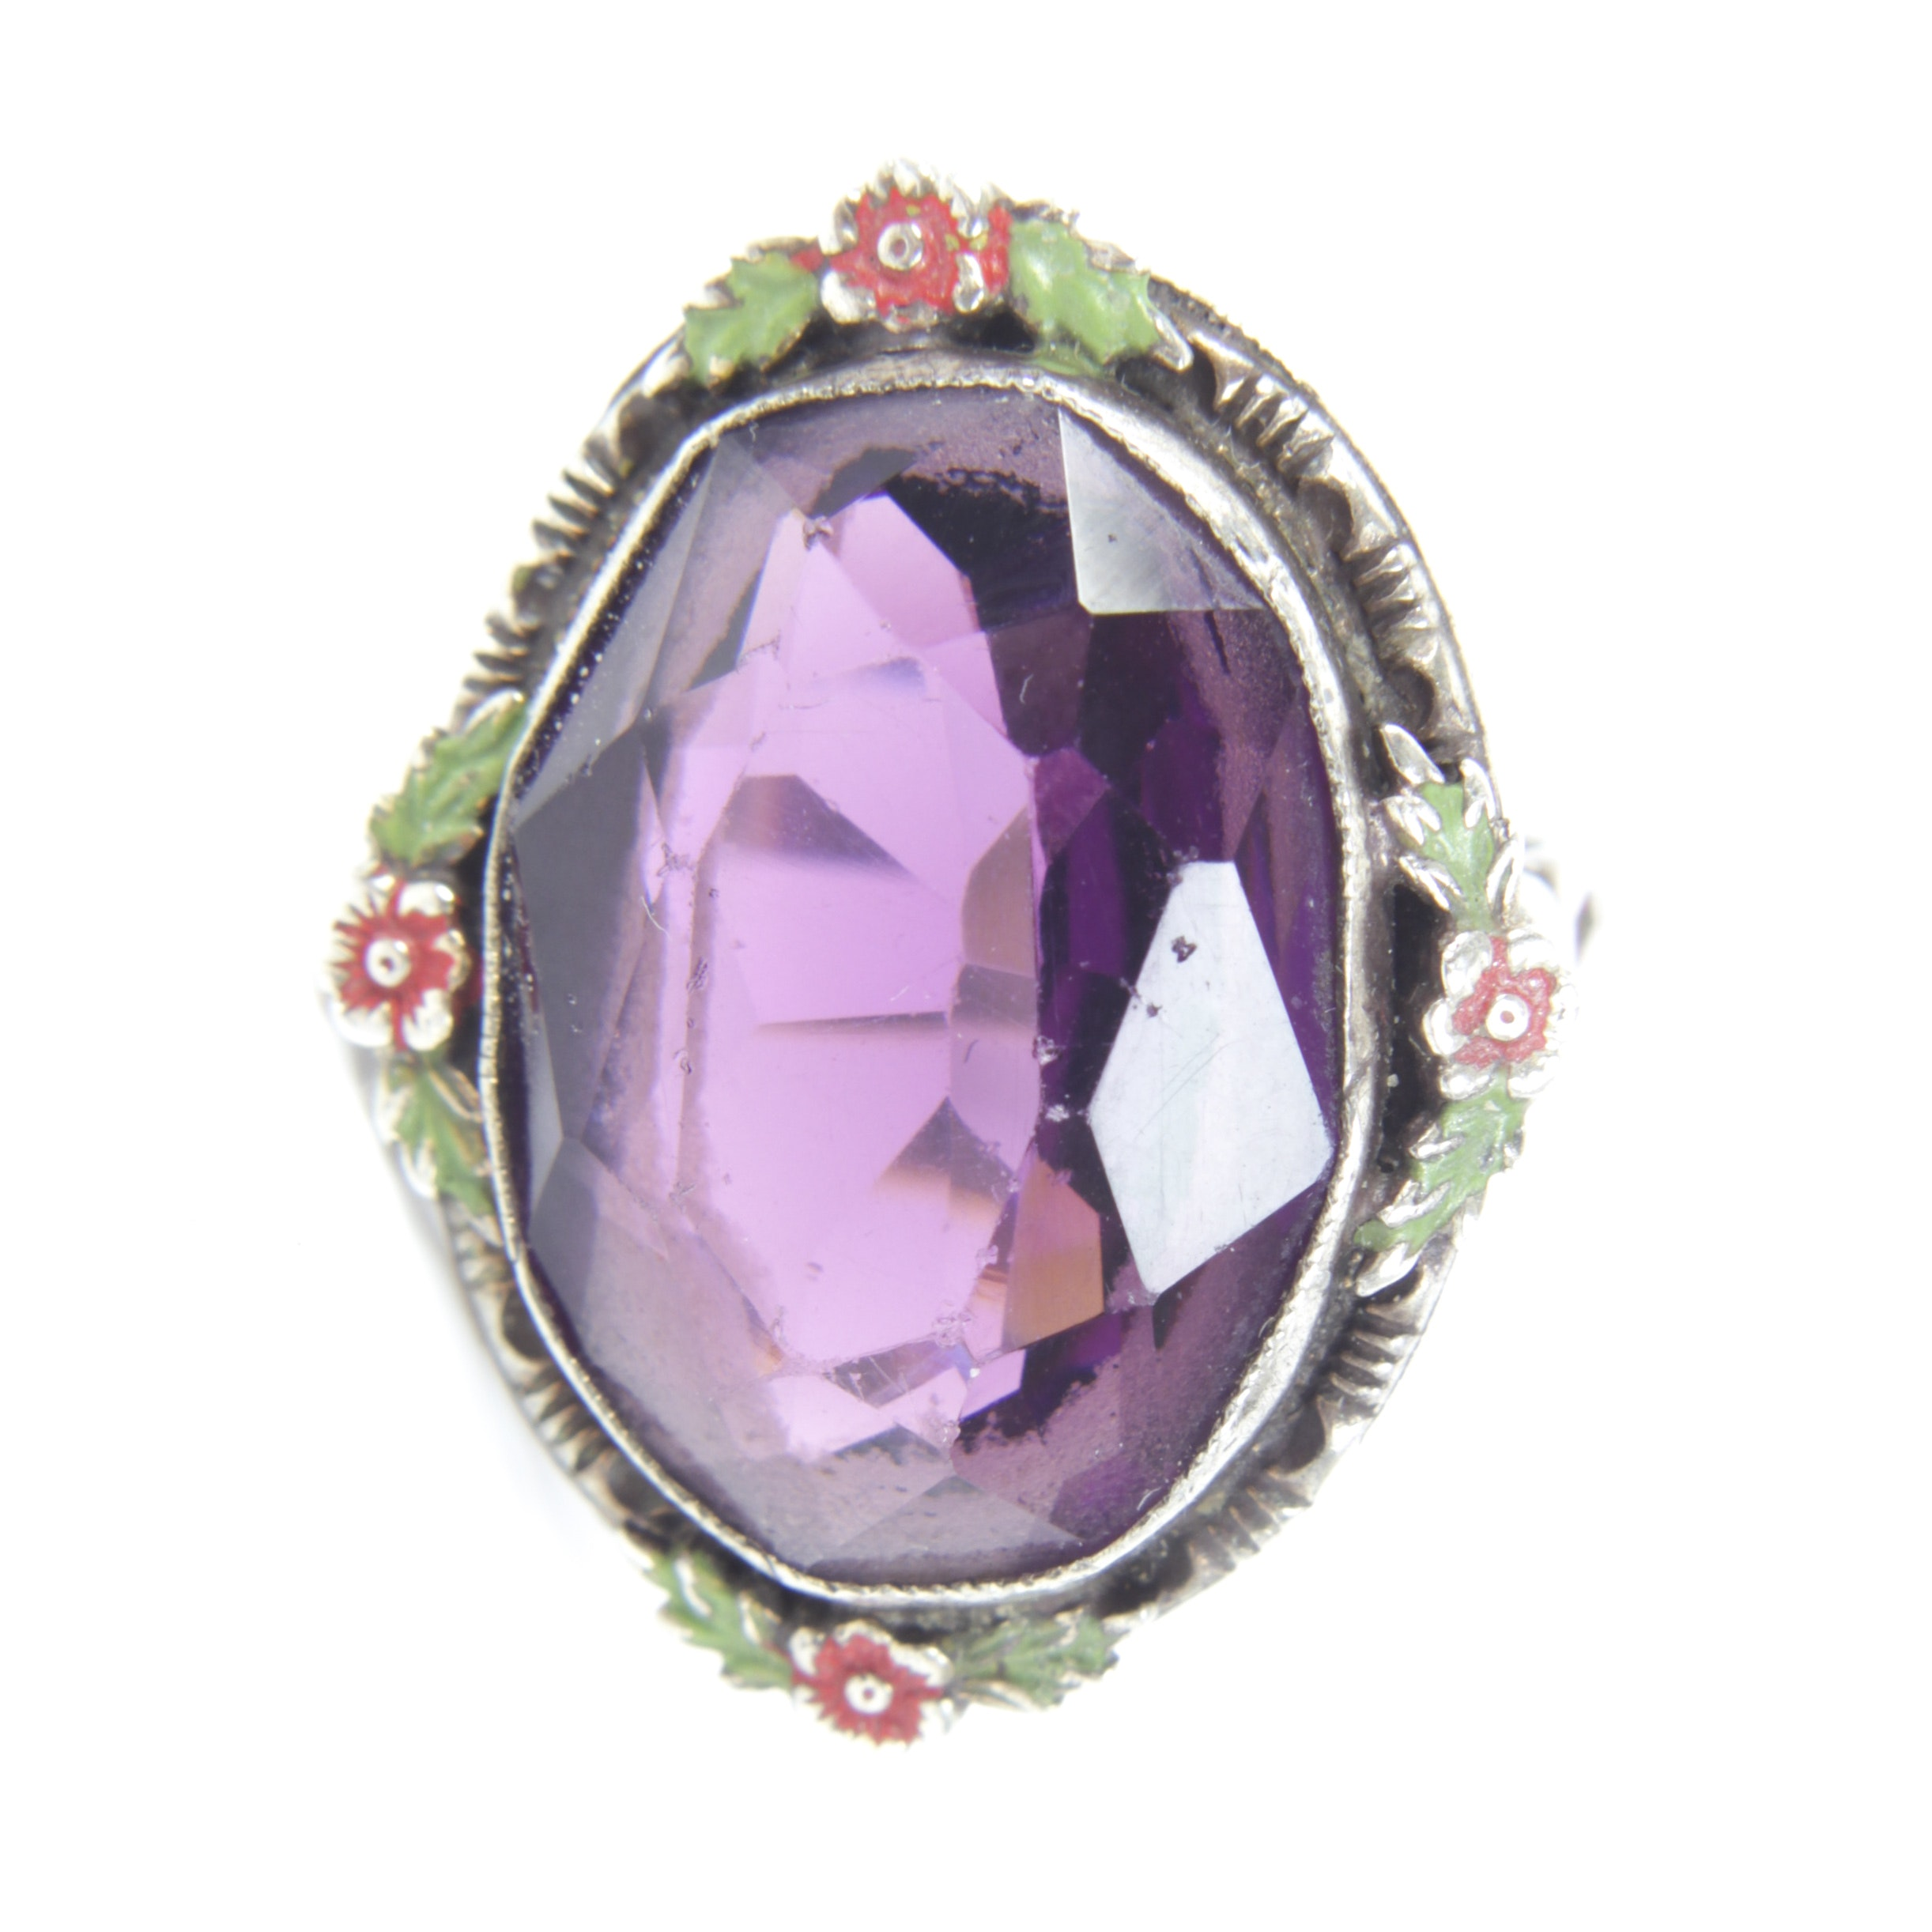 Vintage Sterling Silver 9.07 CT Amethyst Ring